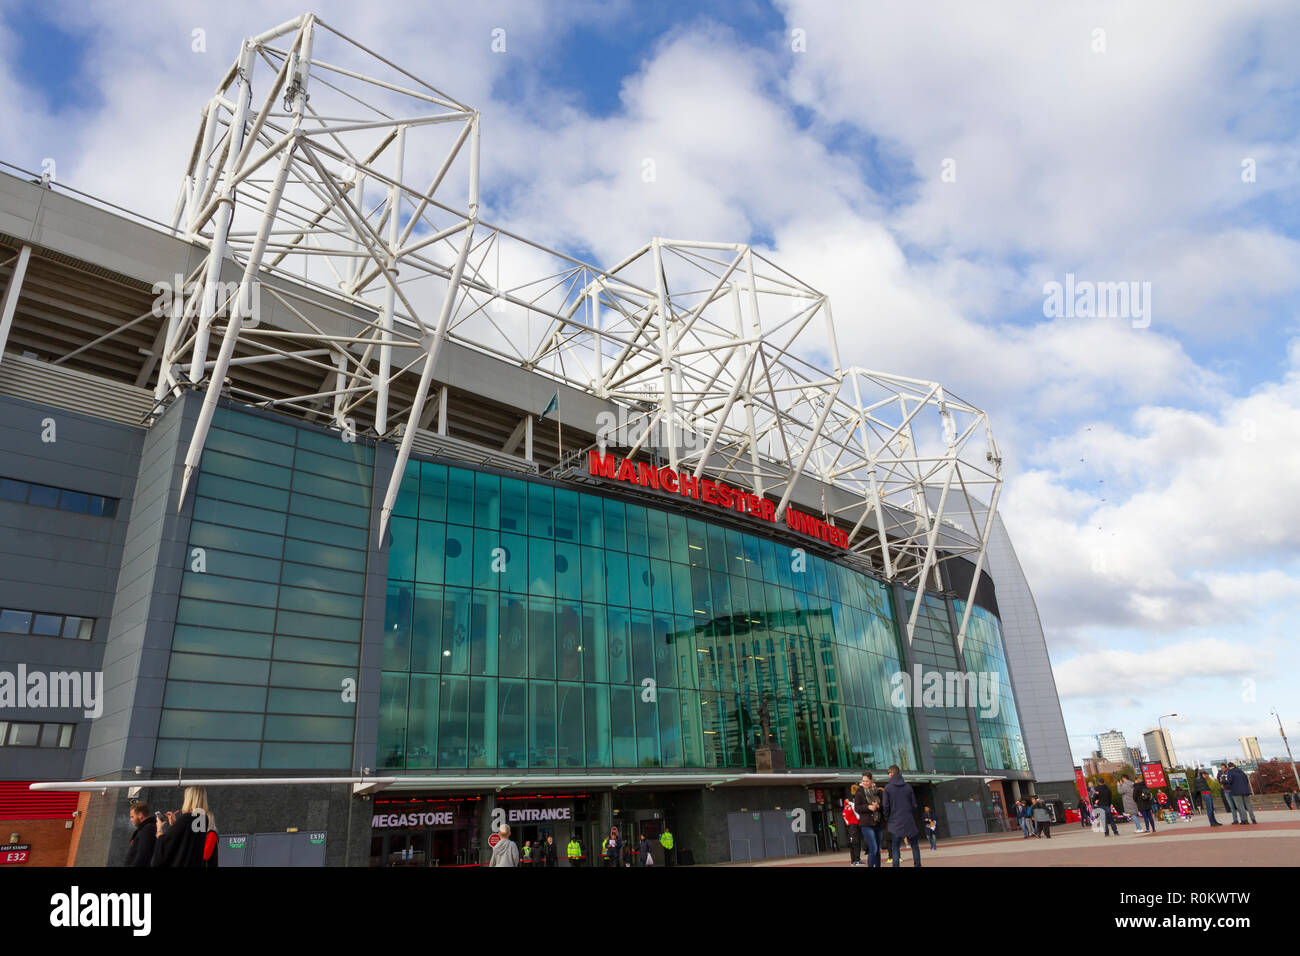 Old Trafford Football Ground. Home to Manchester United Football Club - Stock Image